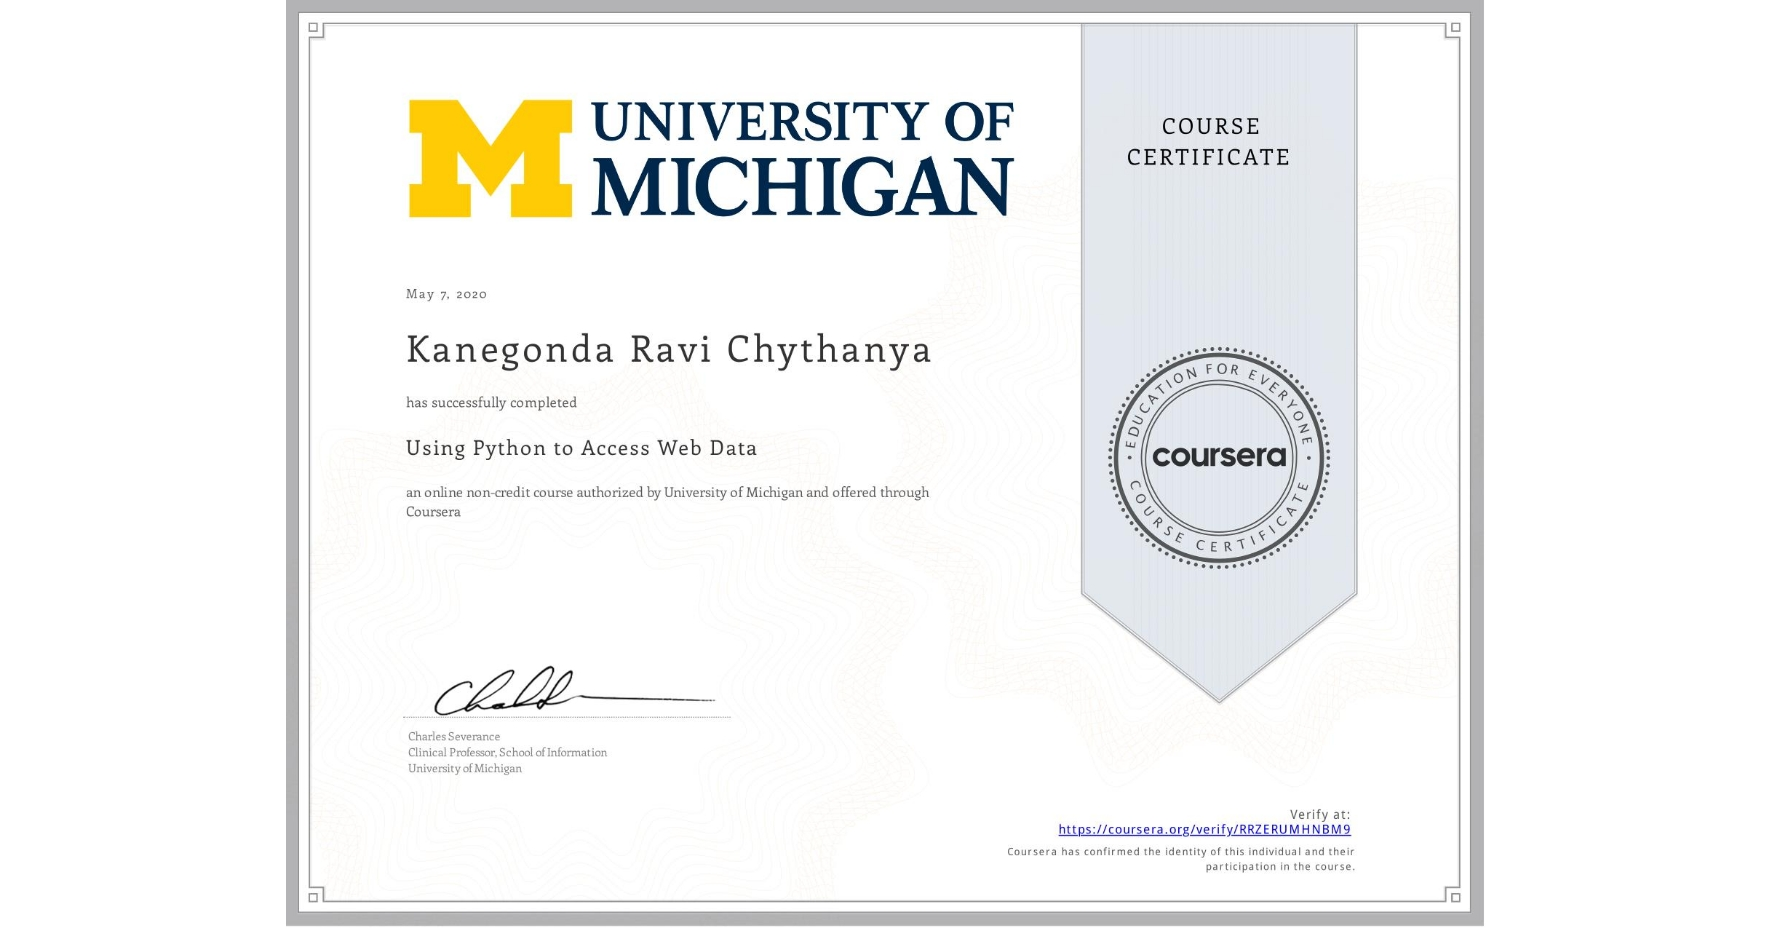 View certificate for Kanegonda Ravi Chythanya, Using Python to Access Web Data, an online non-credit course authorized by University of Michigan and offered through Coursera